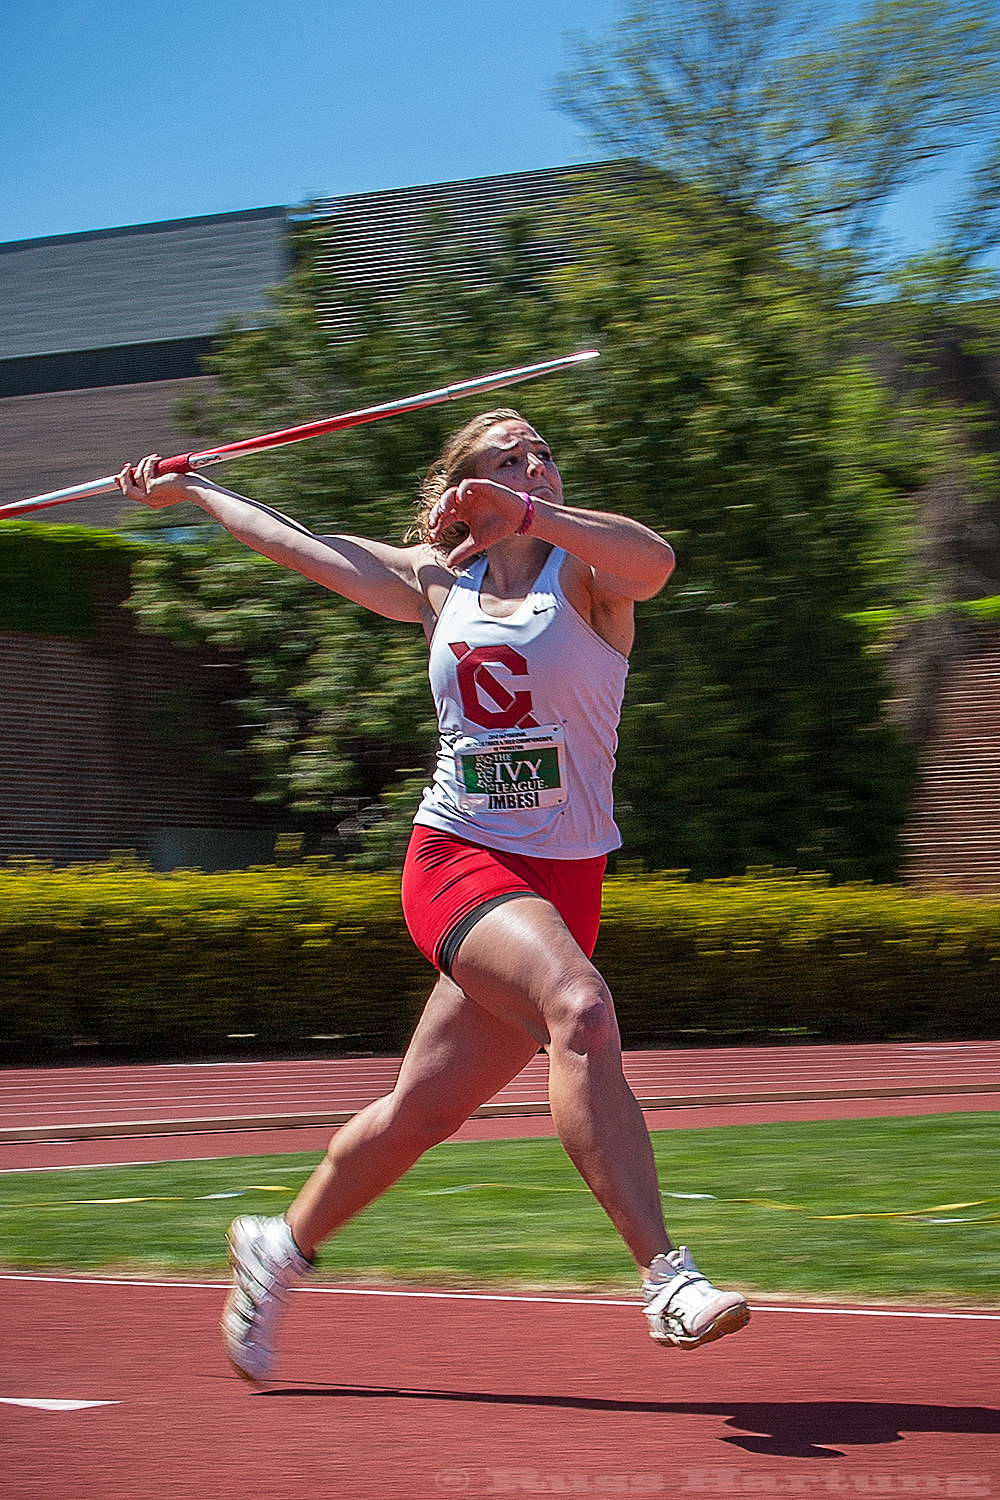 Victoria Imbesis competing in javelin at the 2013 Heptagonal Championships at Princeton.